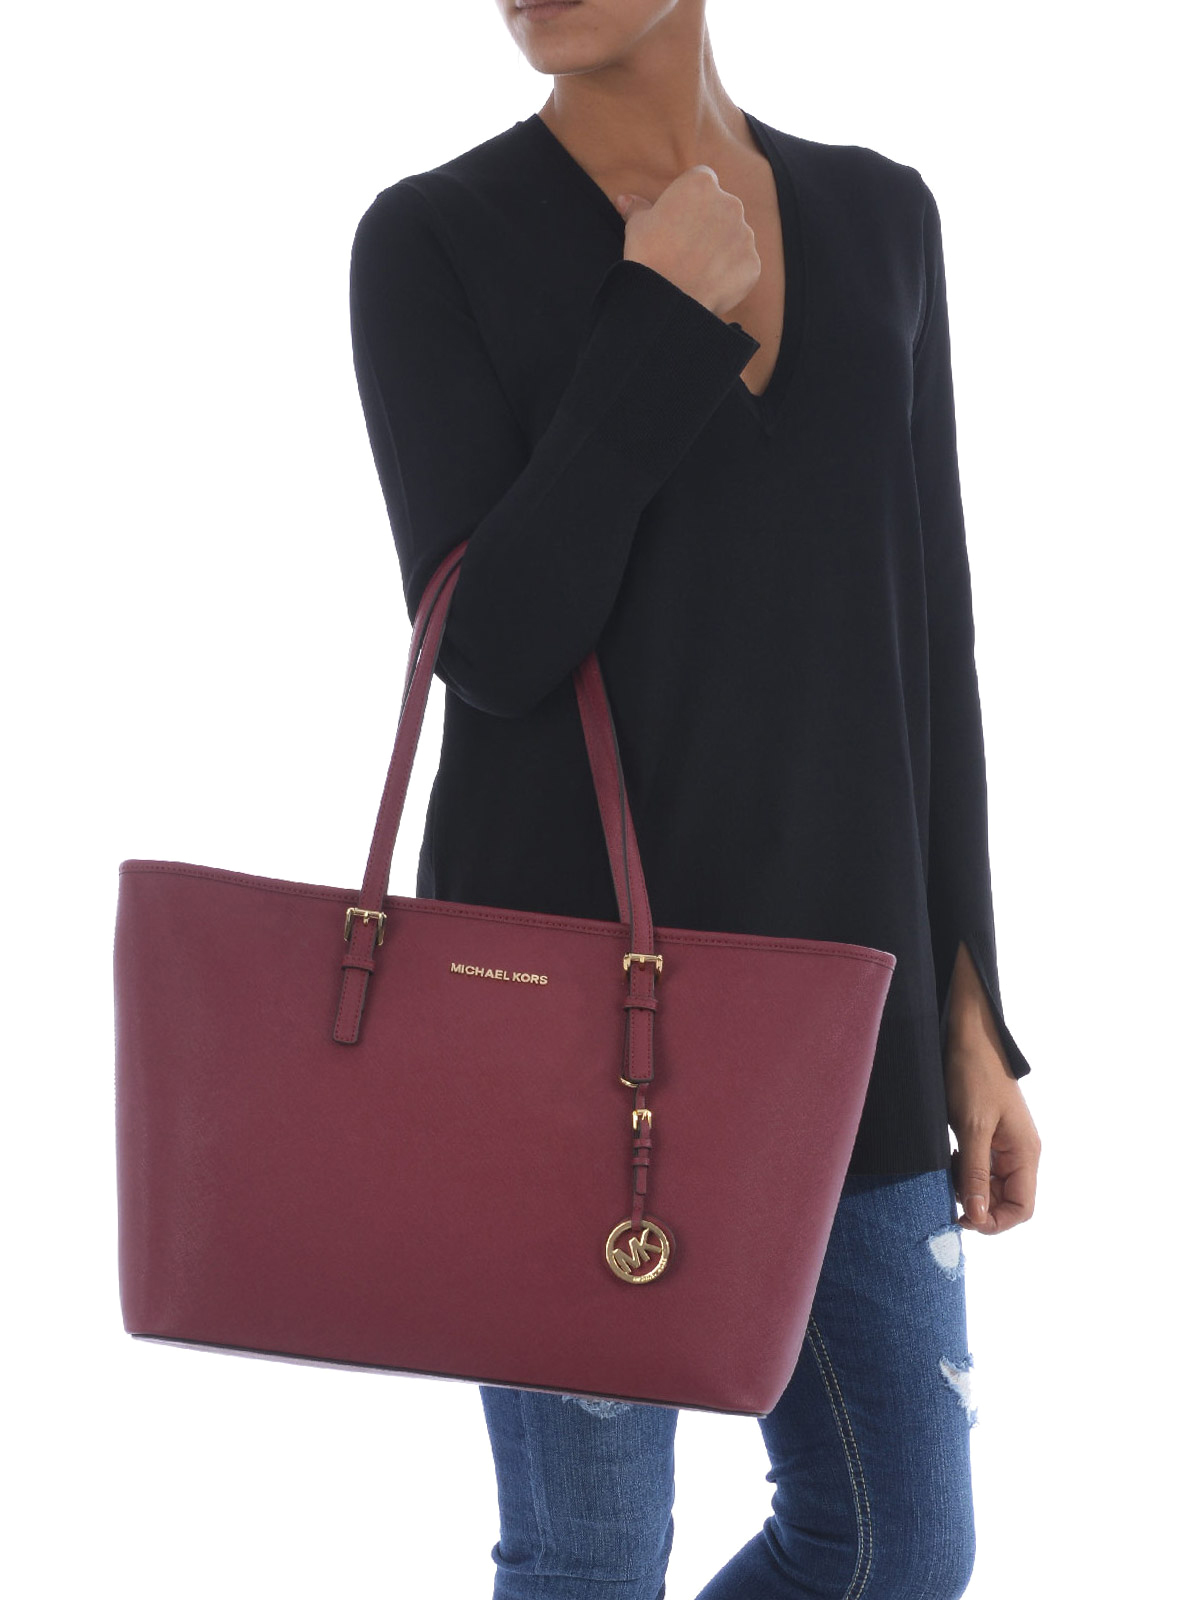 a990caa7dae1 Michael Kors - Jet Set Travel mulberry medium tote - totes bags ...